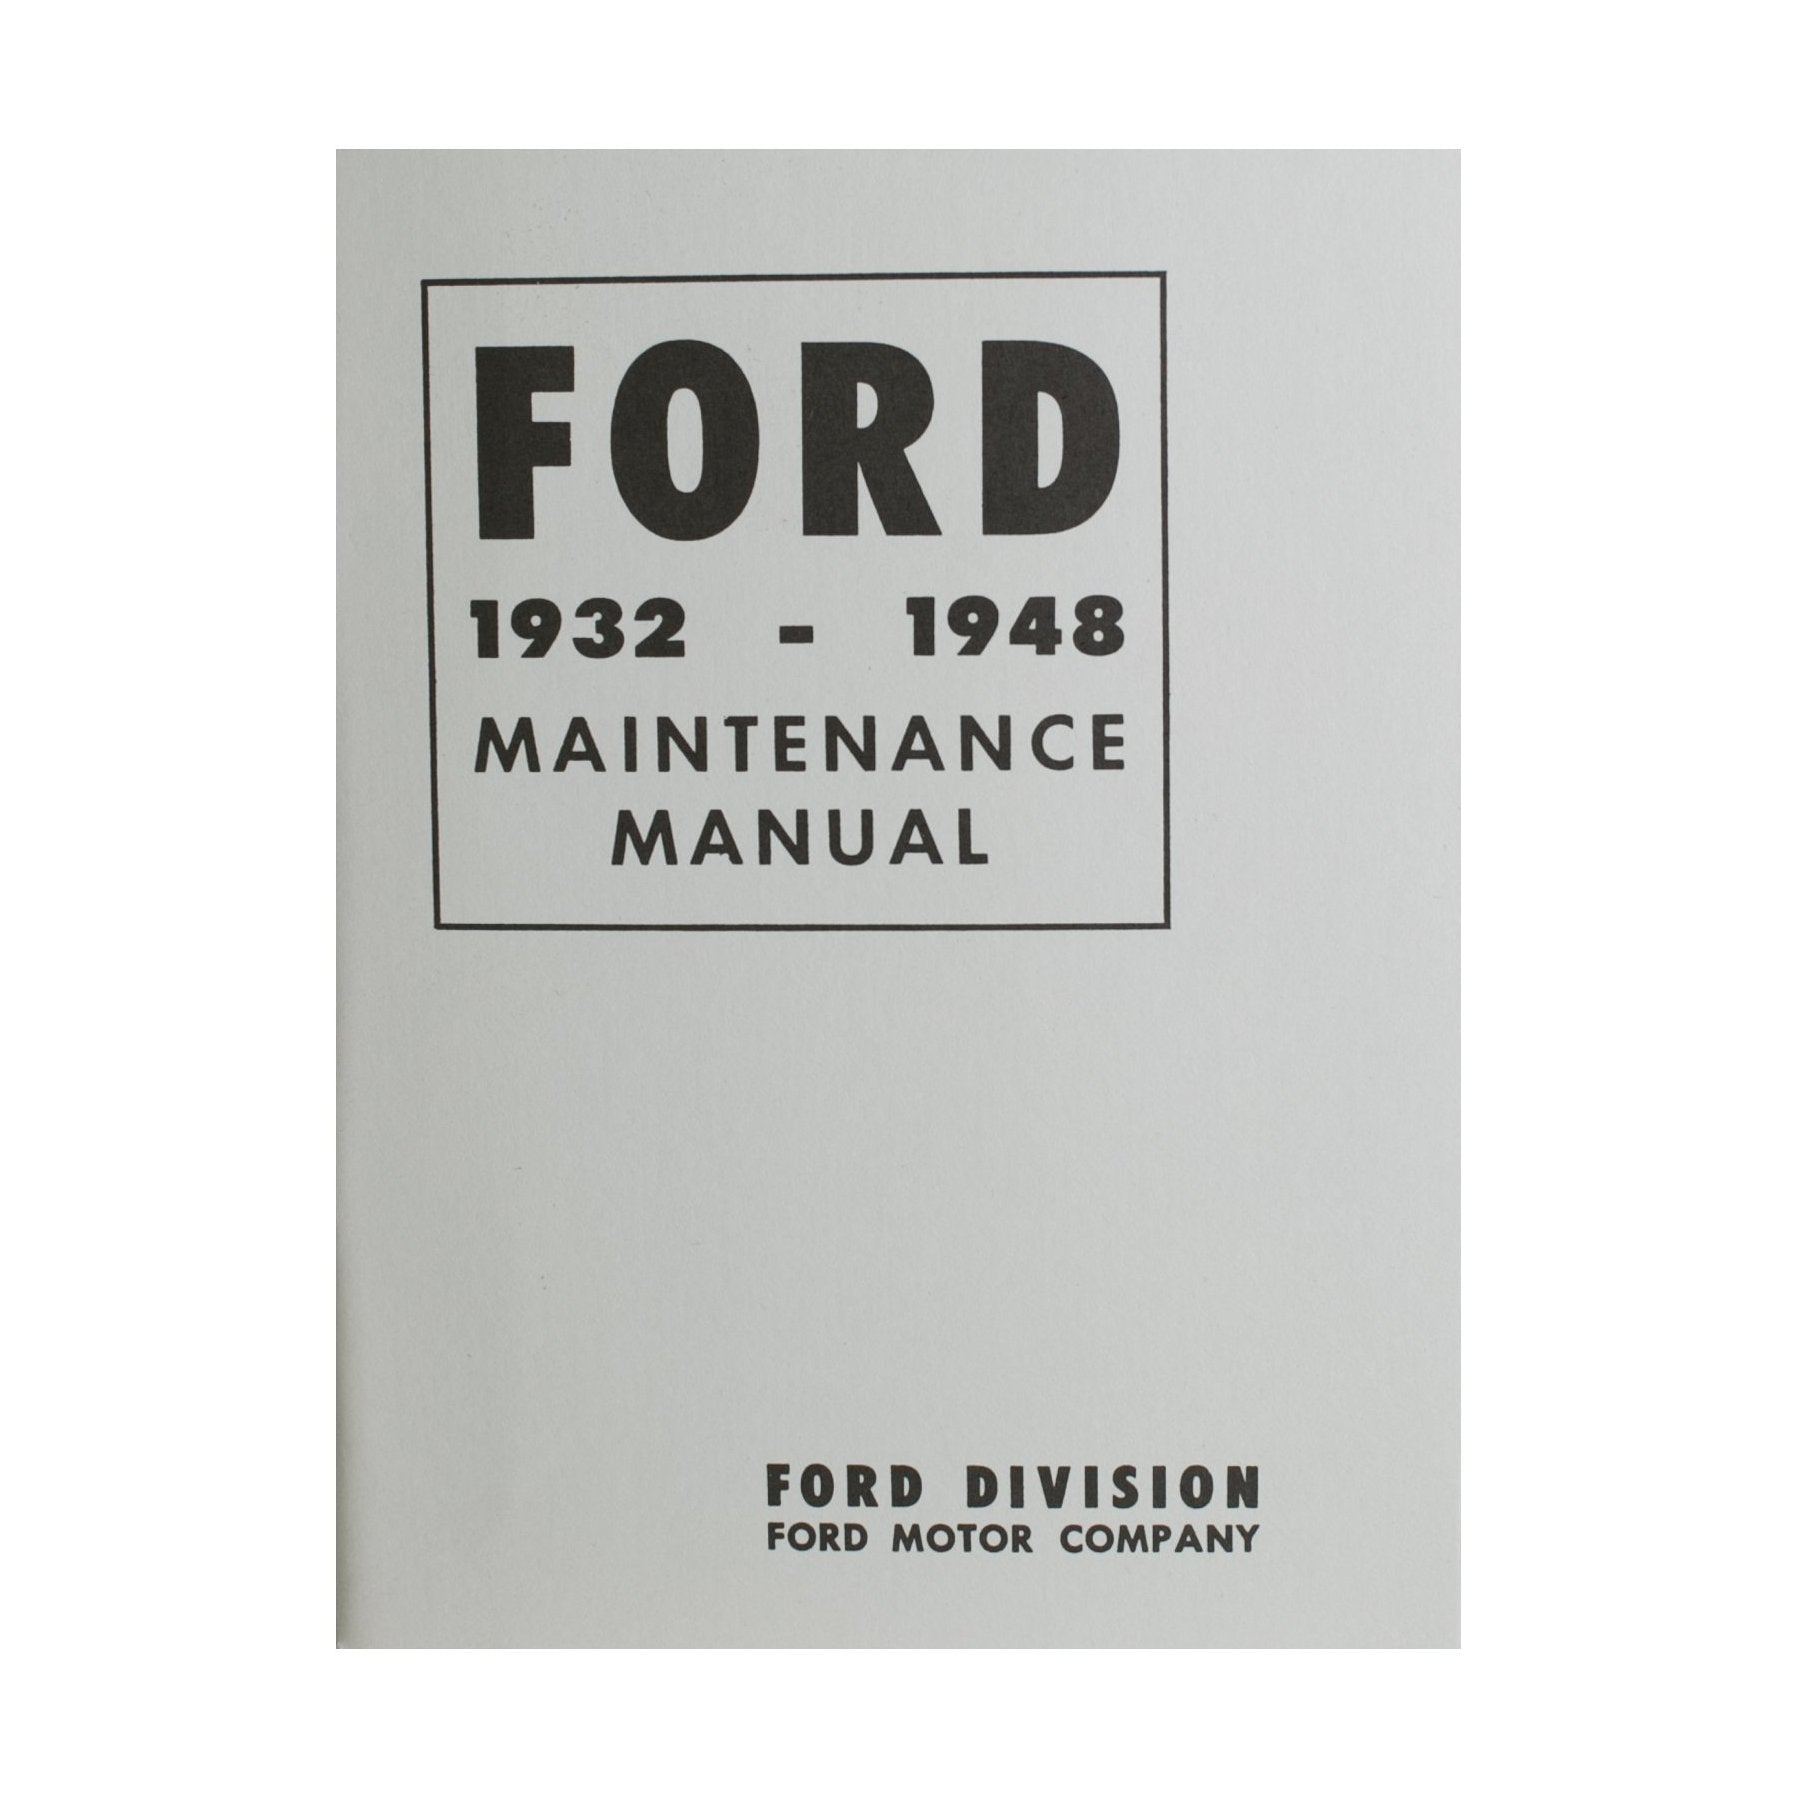 Ford Maintenance Manual • 1932-48 Ford